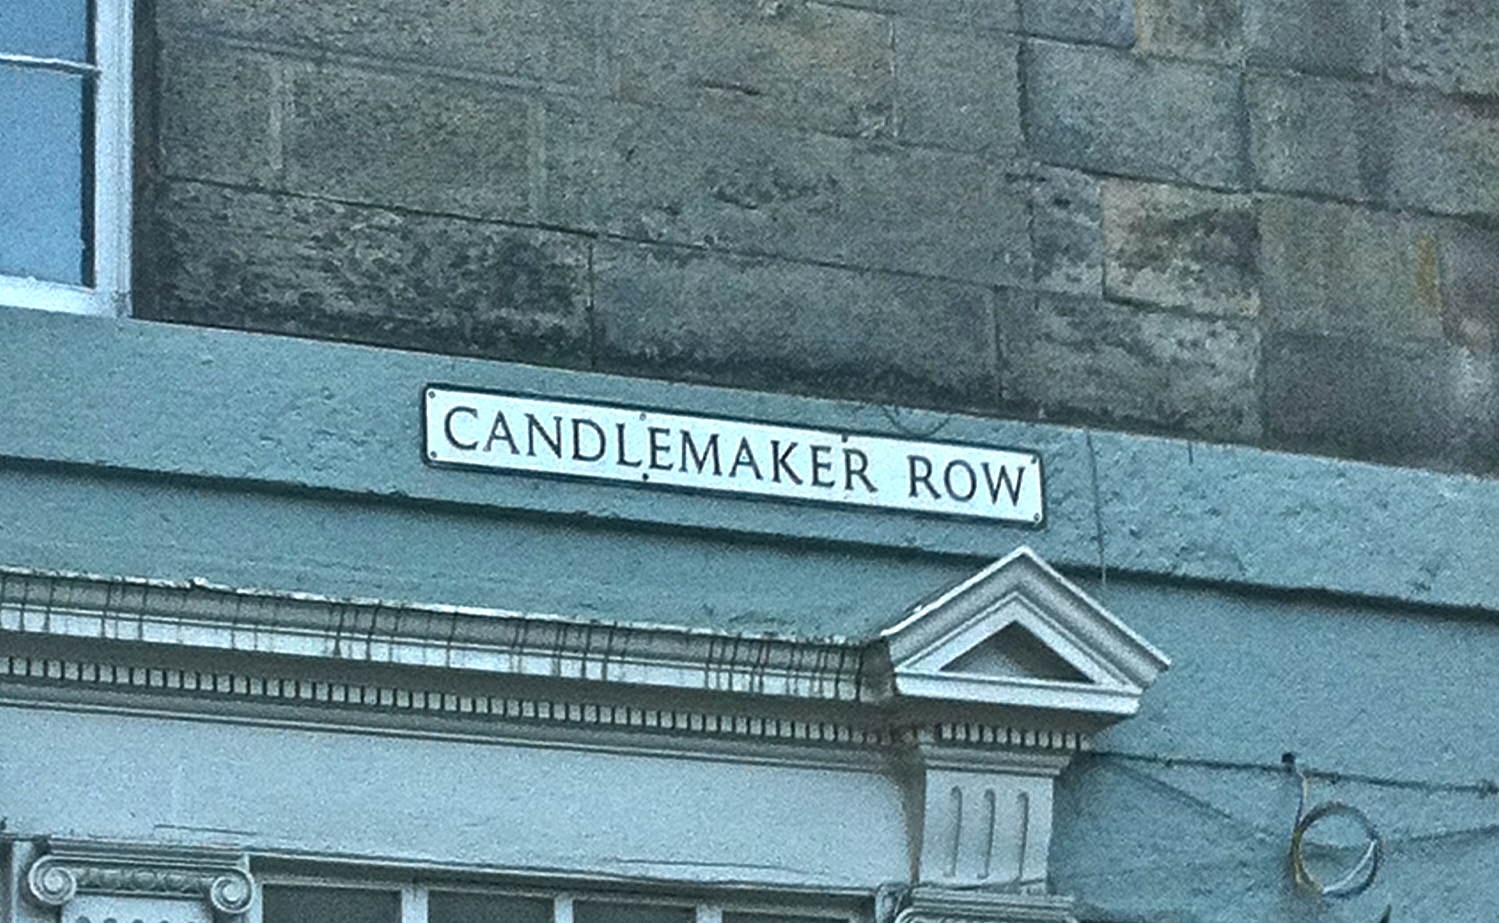 Candlemaker Row